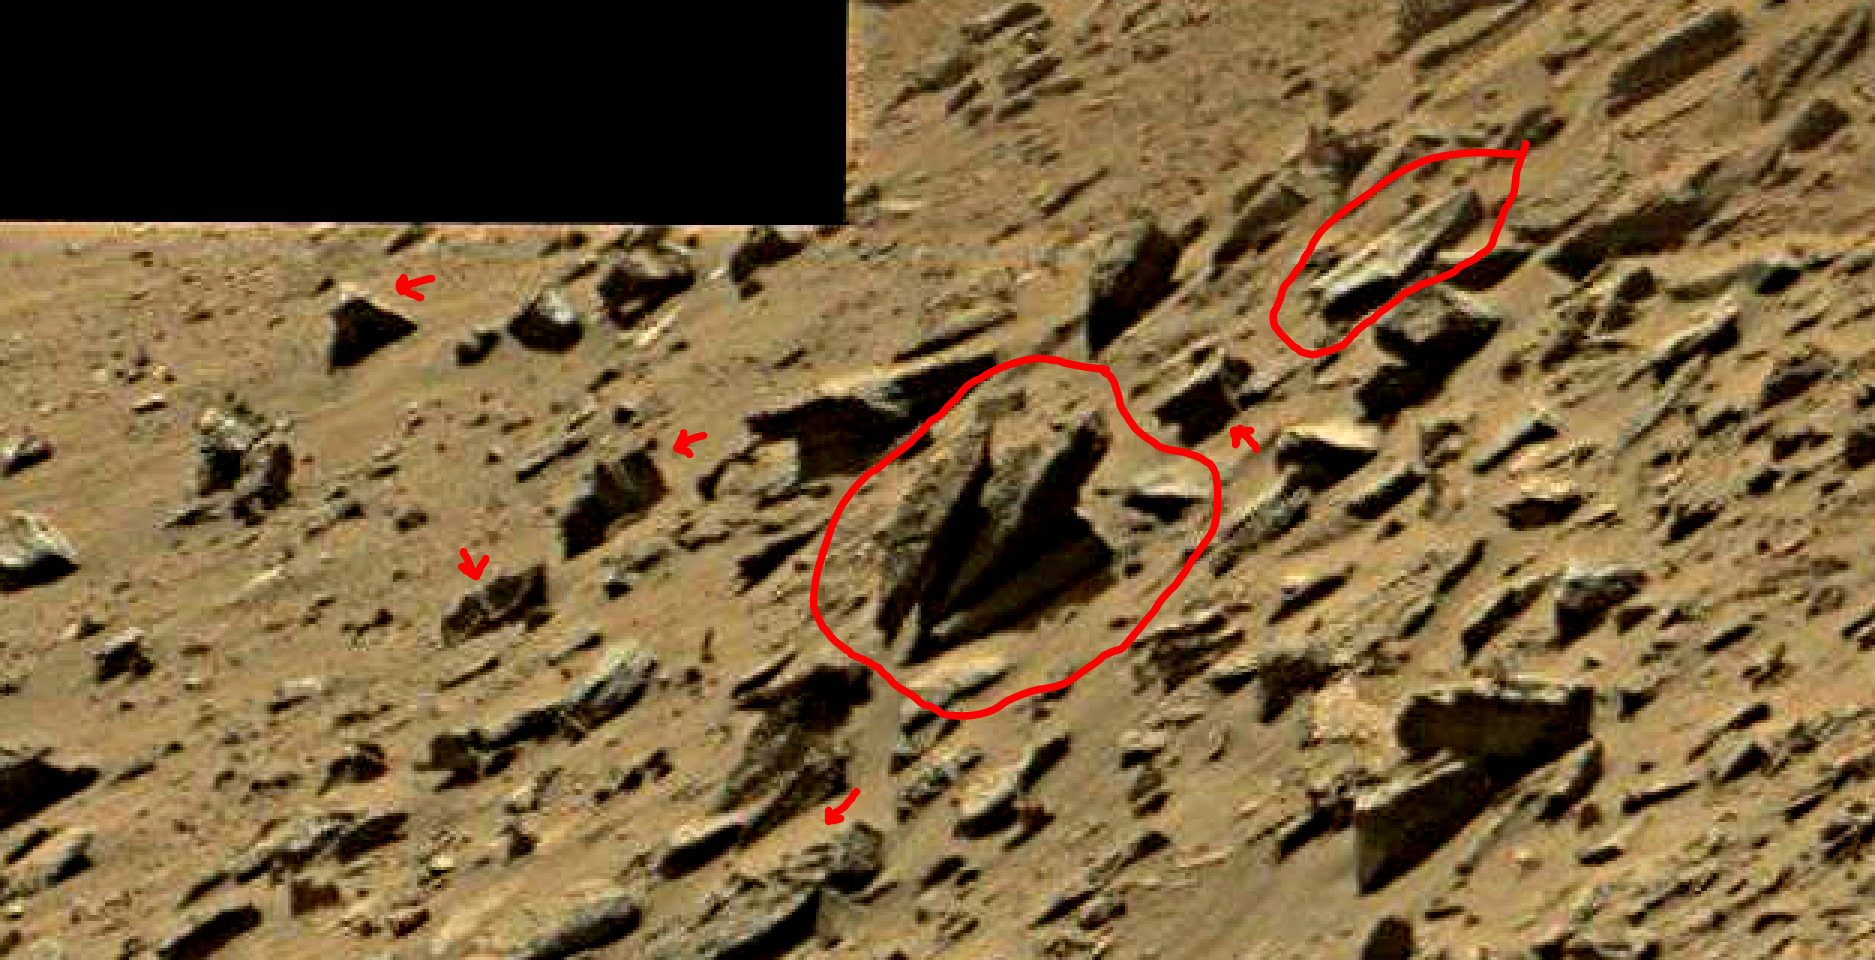 mars sol 1434 anomaly artifacts 14 was life on mars